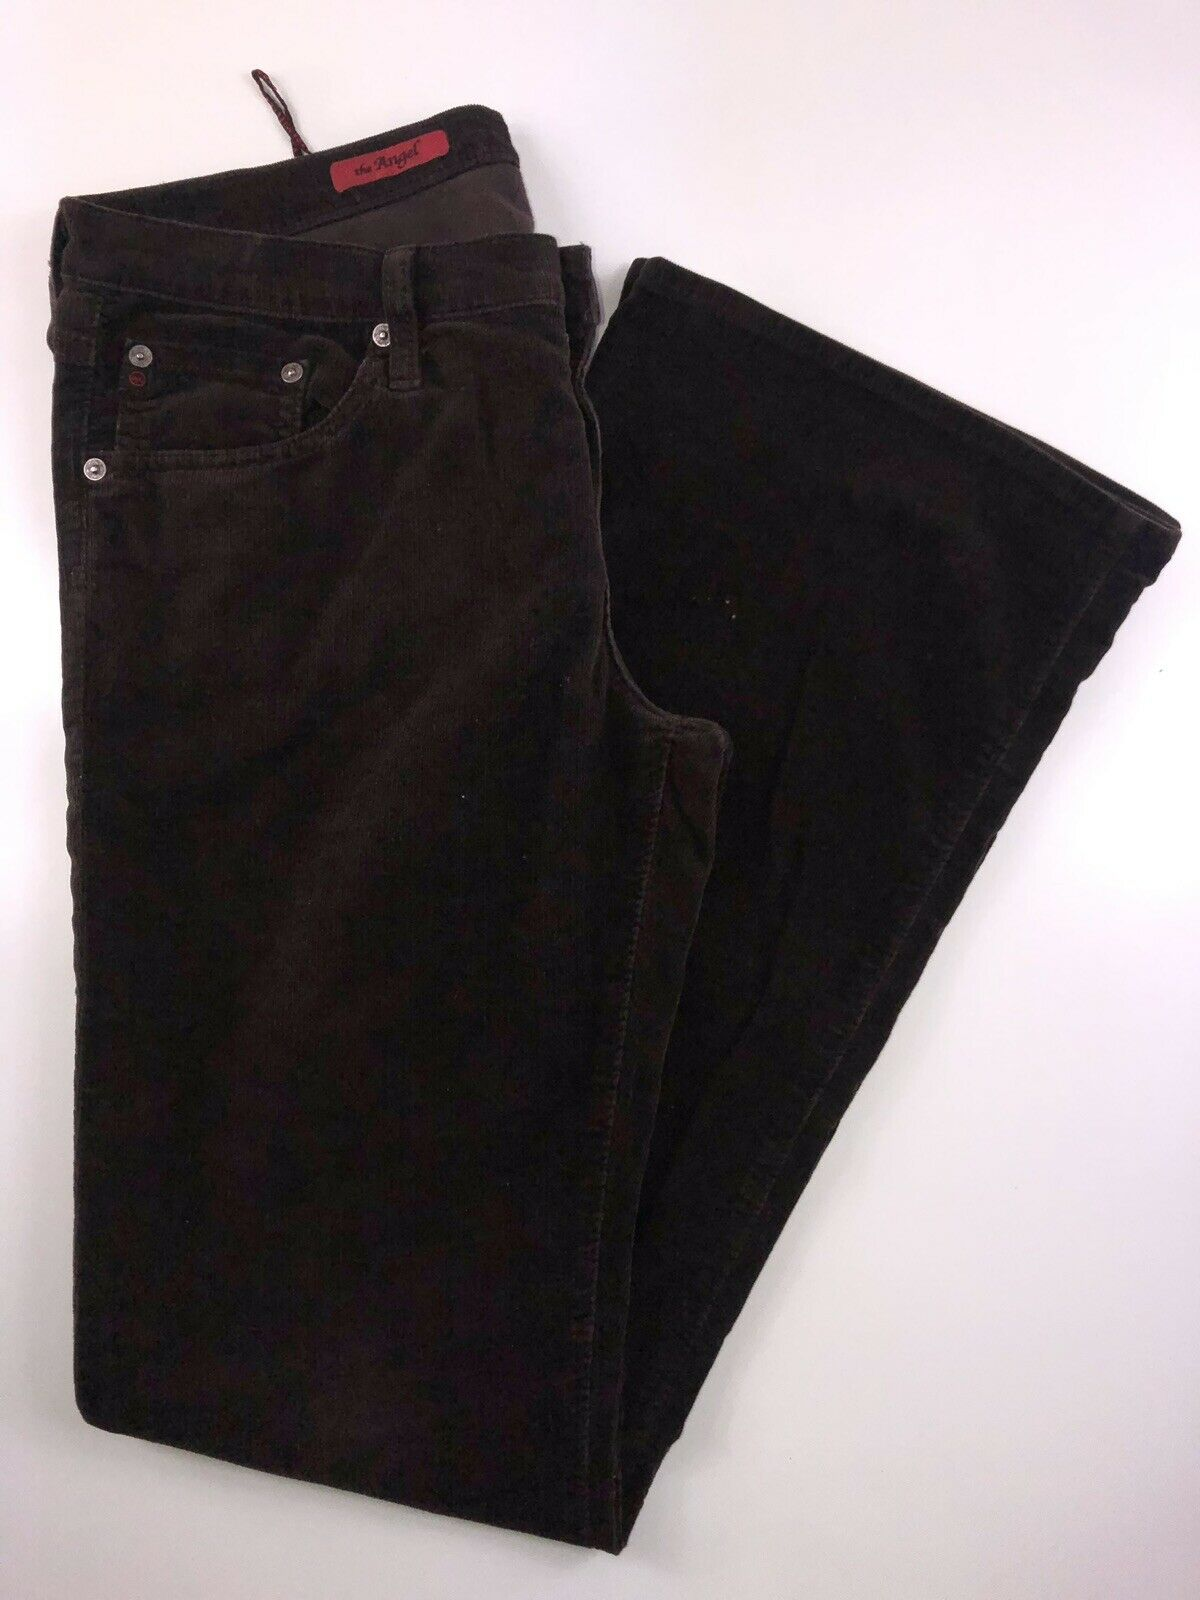 Adriano goldschmied Angel Brown Corduroy Bootcut Jeans 31R. 31x32x9x20 .